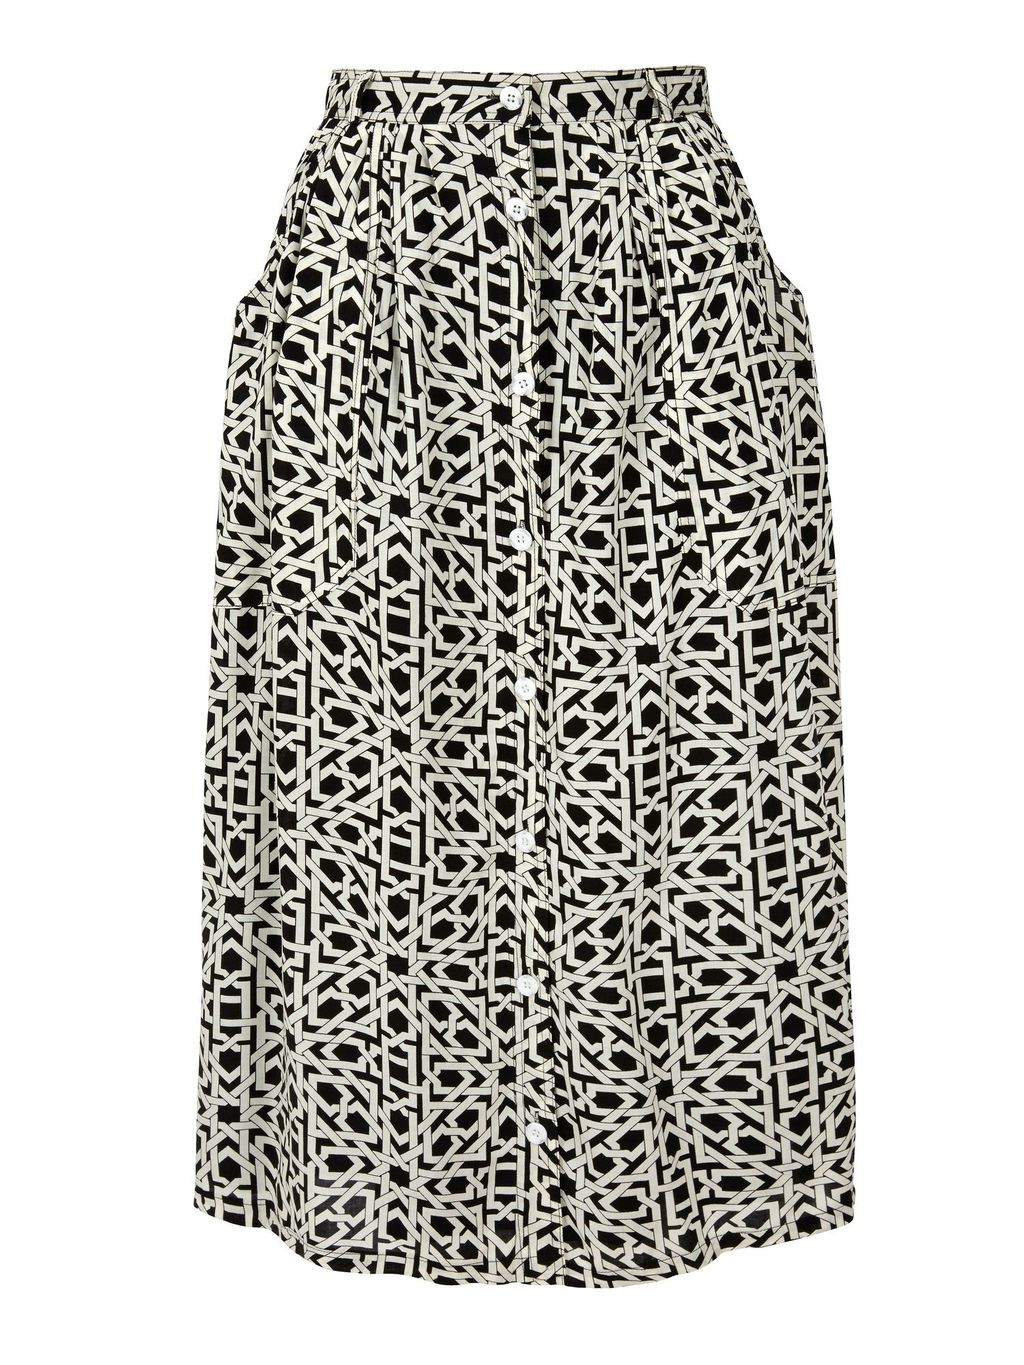 Geo Print Button Through Midi Skirt, Black/White - fit: loose/voluminous; waist: high rise; secondary colour: white; predominant colour: black; length: on the knee; style: a-line; fibres: viscose/rayon - 100%; pattern type: fabric; pattern: patterned/print; texture group: other - light to midweight; occasions: creative work; pattern size: standard (bottom); season: a/w 2015; wardrobe: highlight